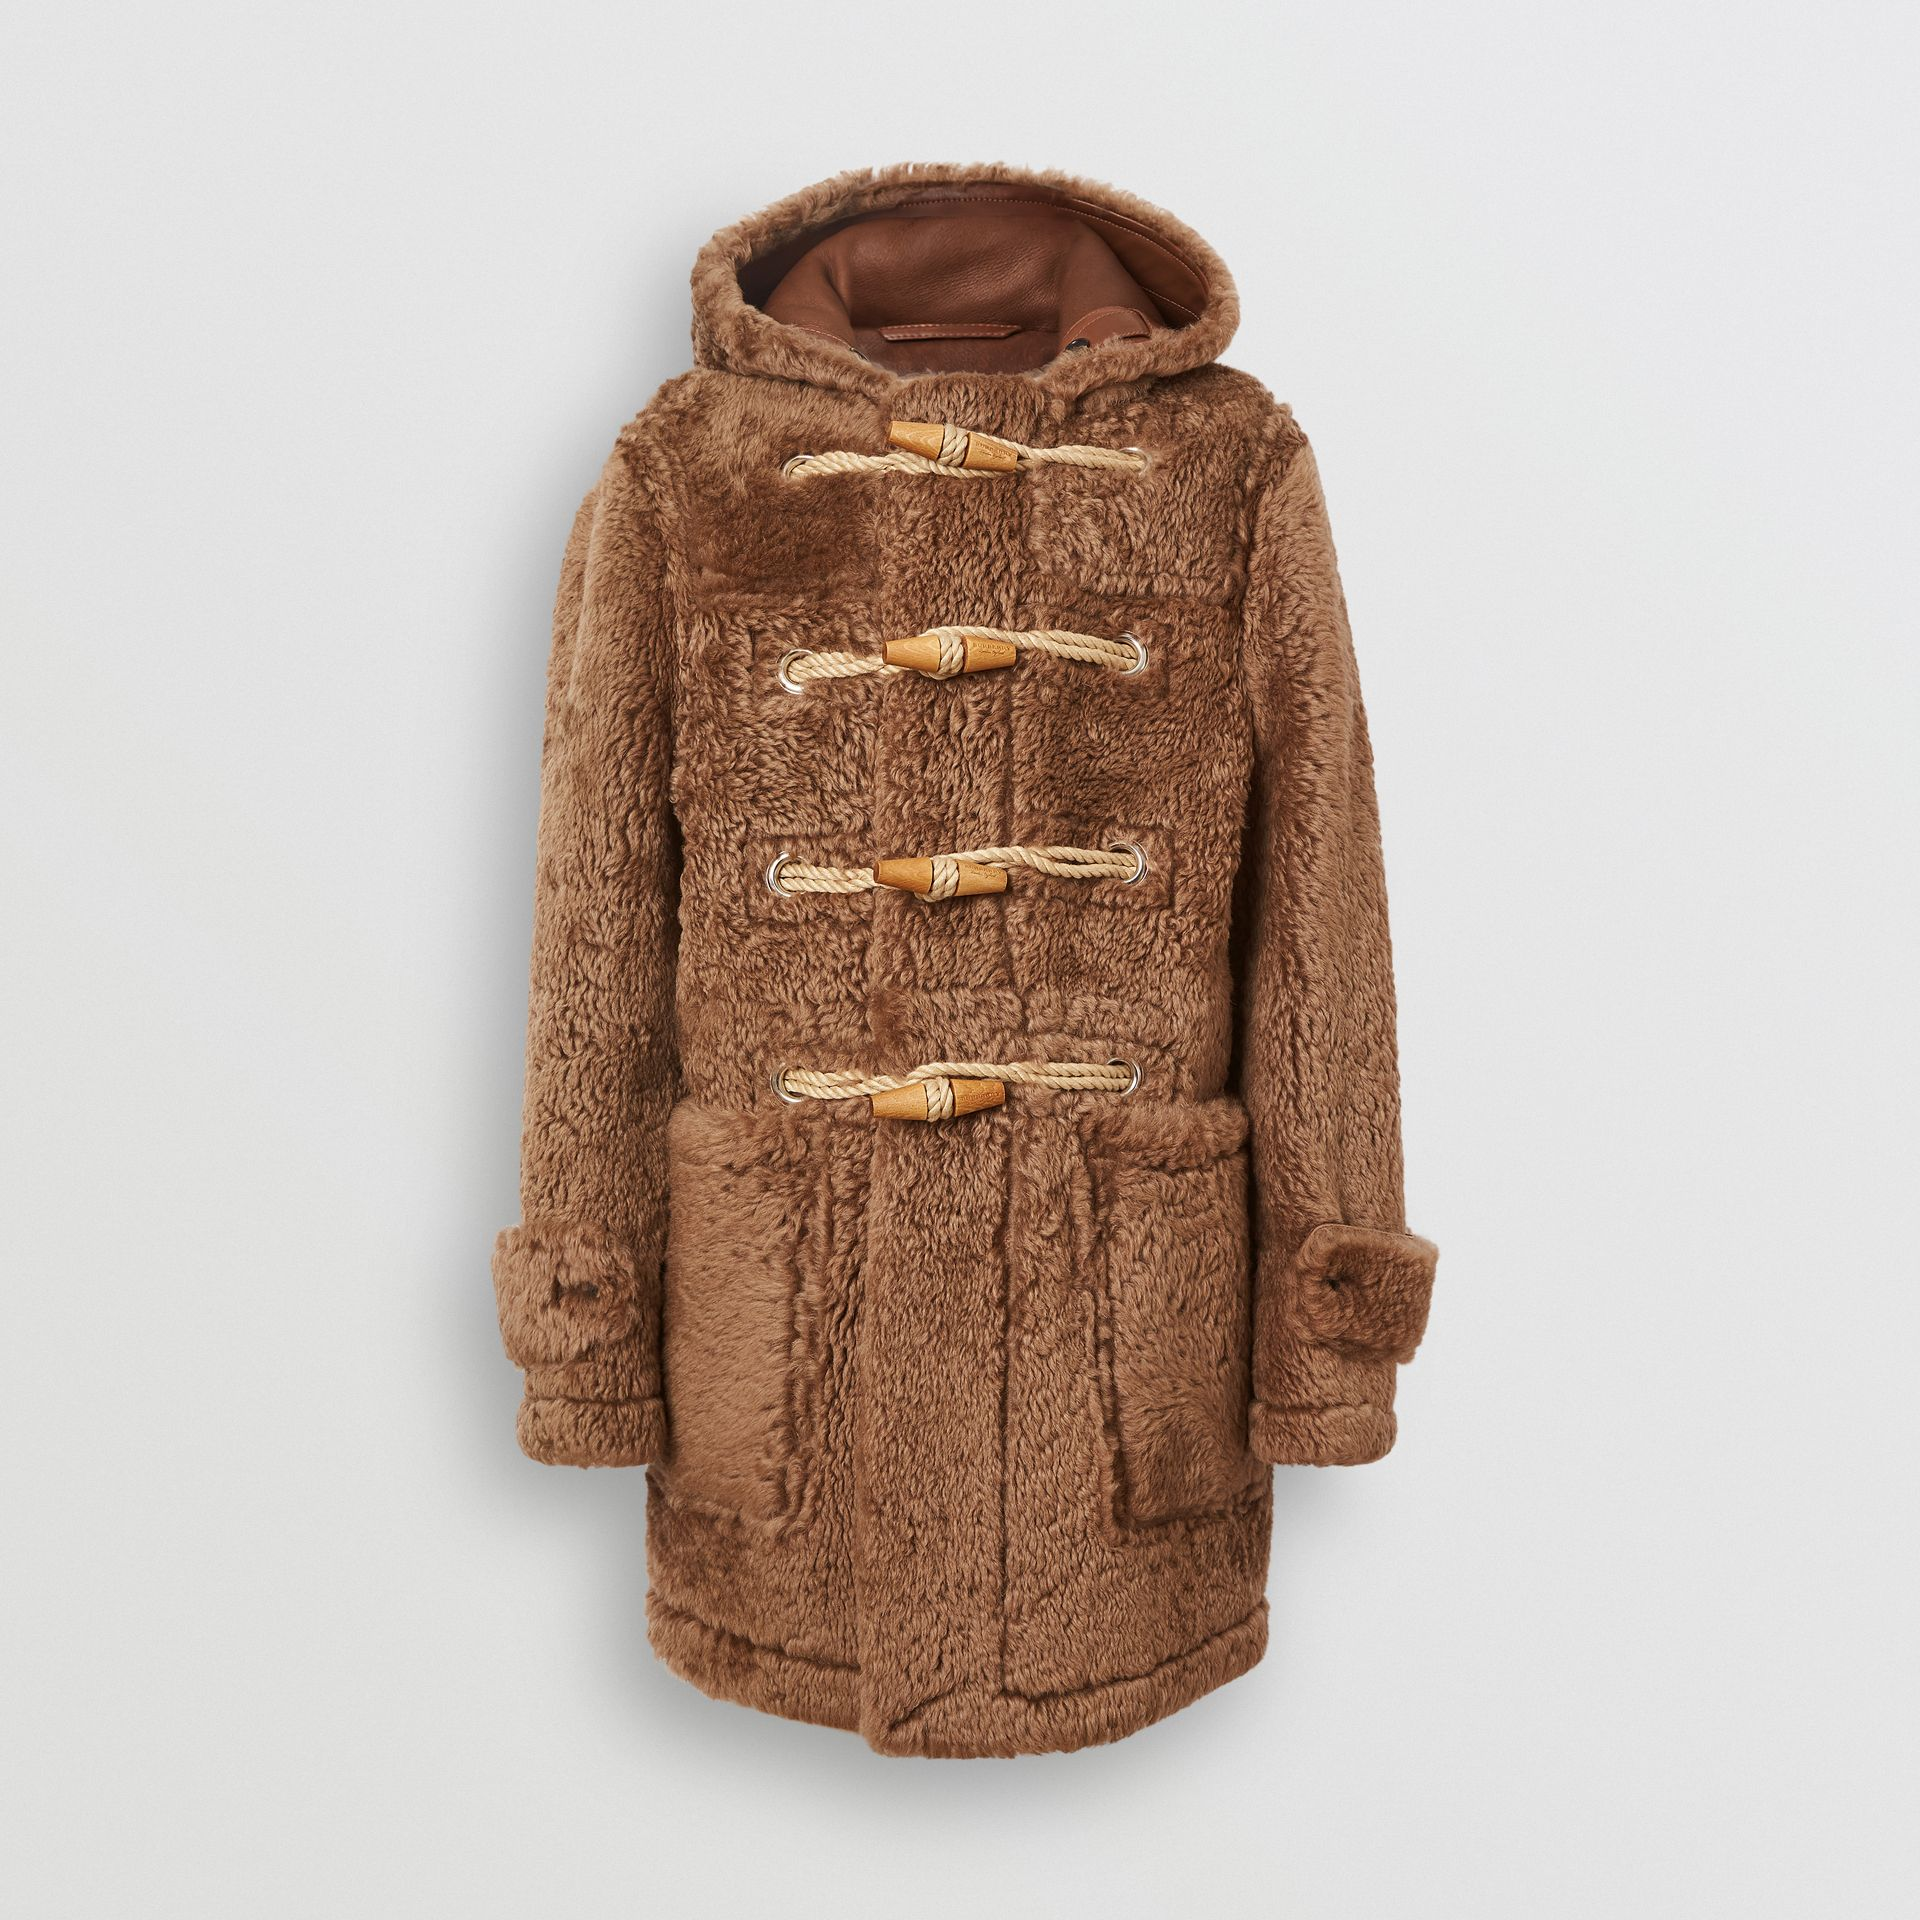 Shearling Duffle Coat in Taupe - Men | Burberry - gallery image 3